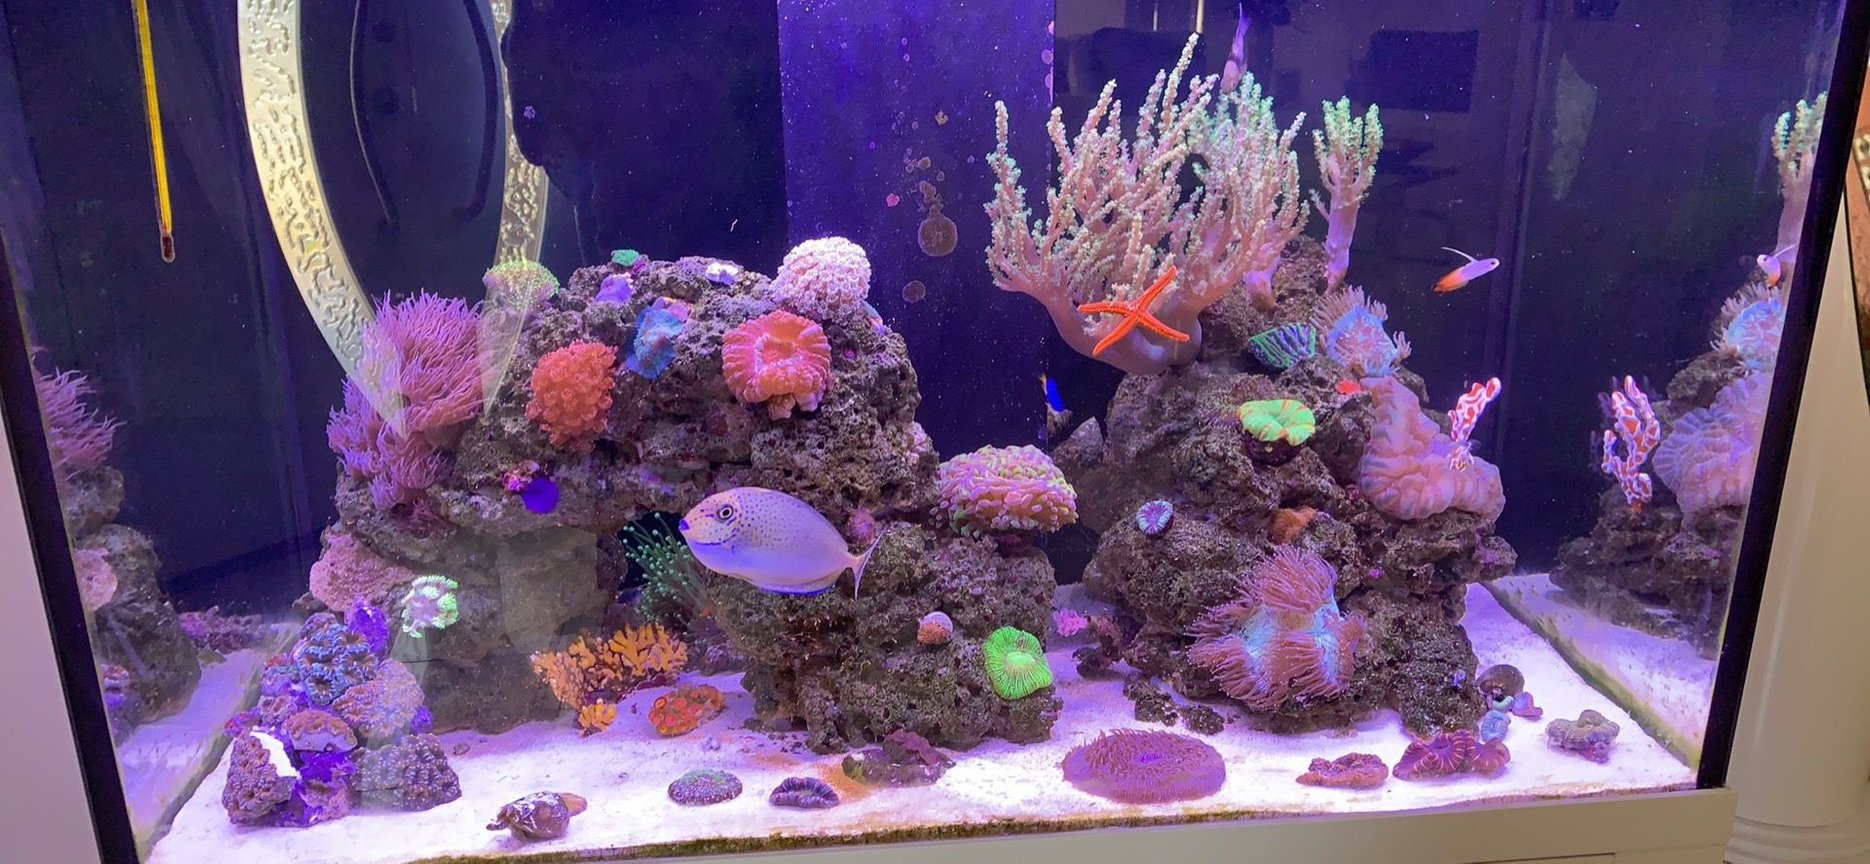 85 gallons reef tank (mostly live coral and fish) - First upload to the site. :)